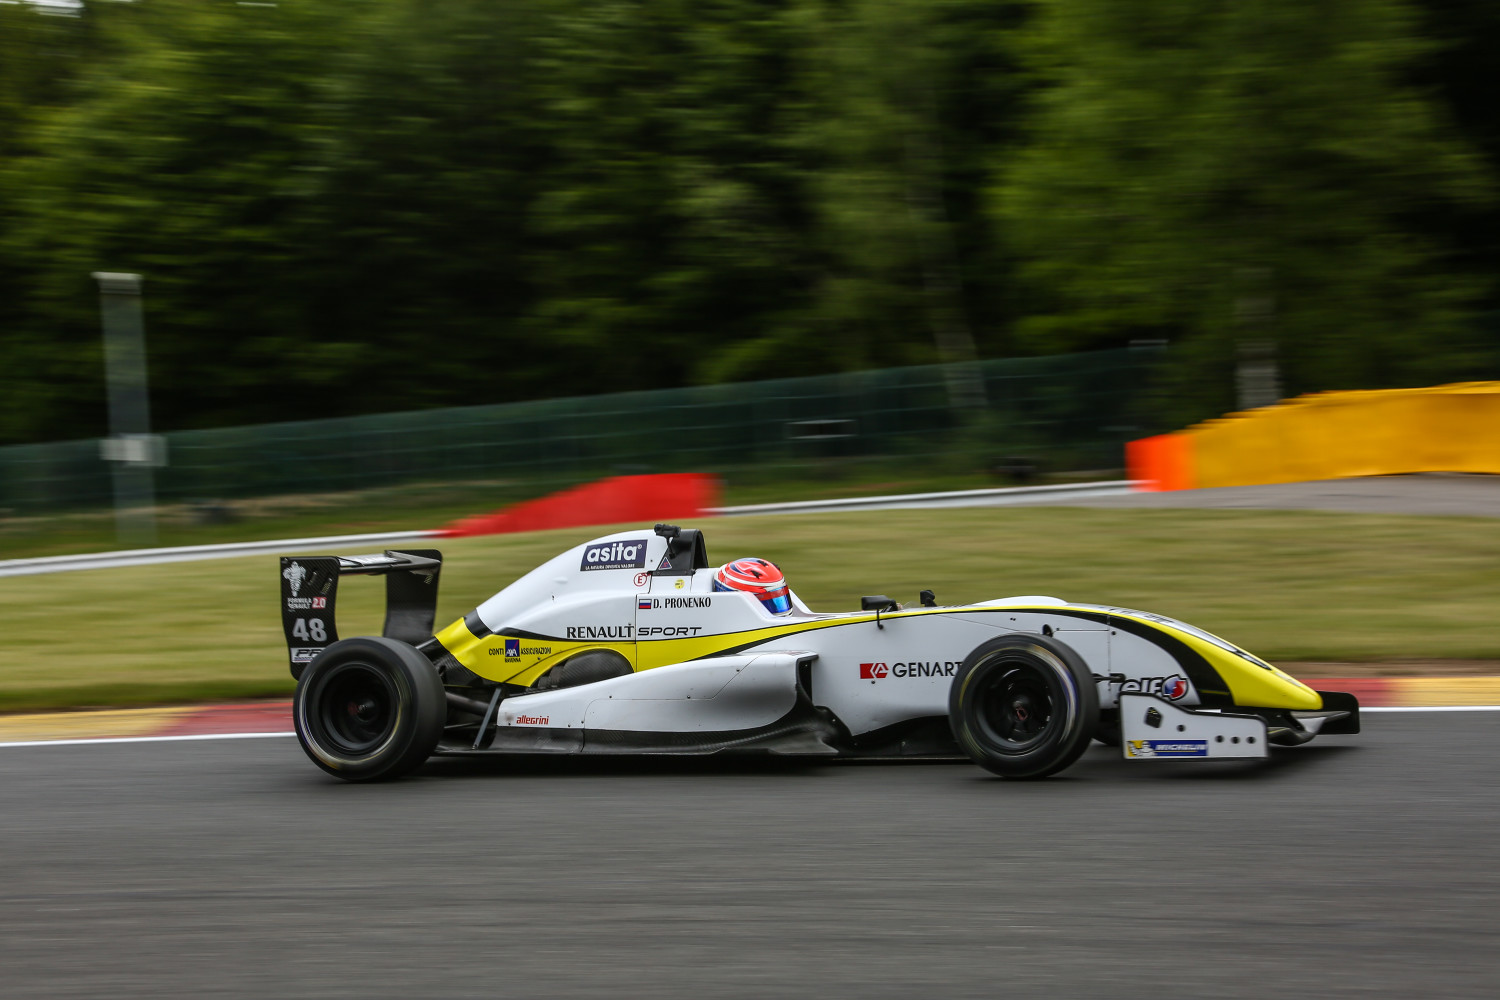 Daniel-Pronenko-BVM-Spa2015-7584-e1435995649294